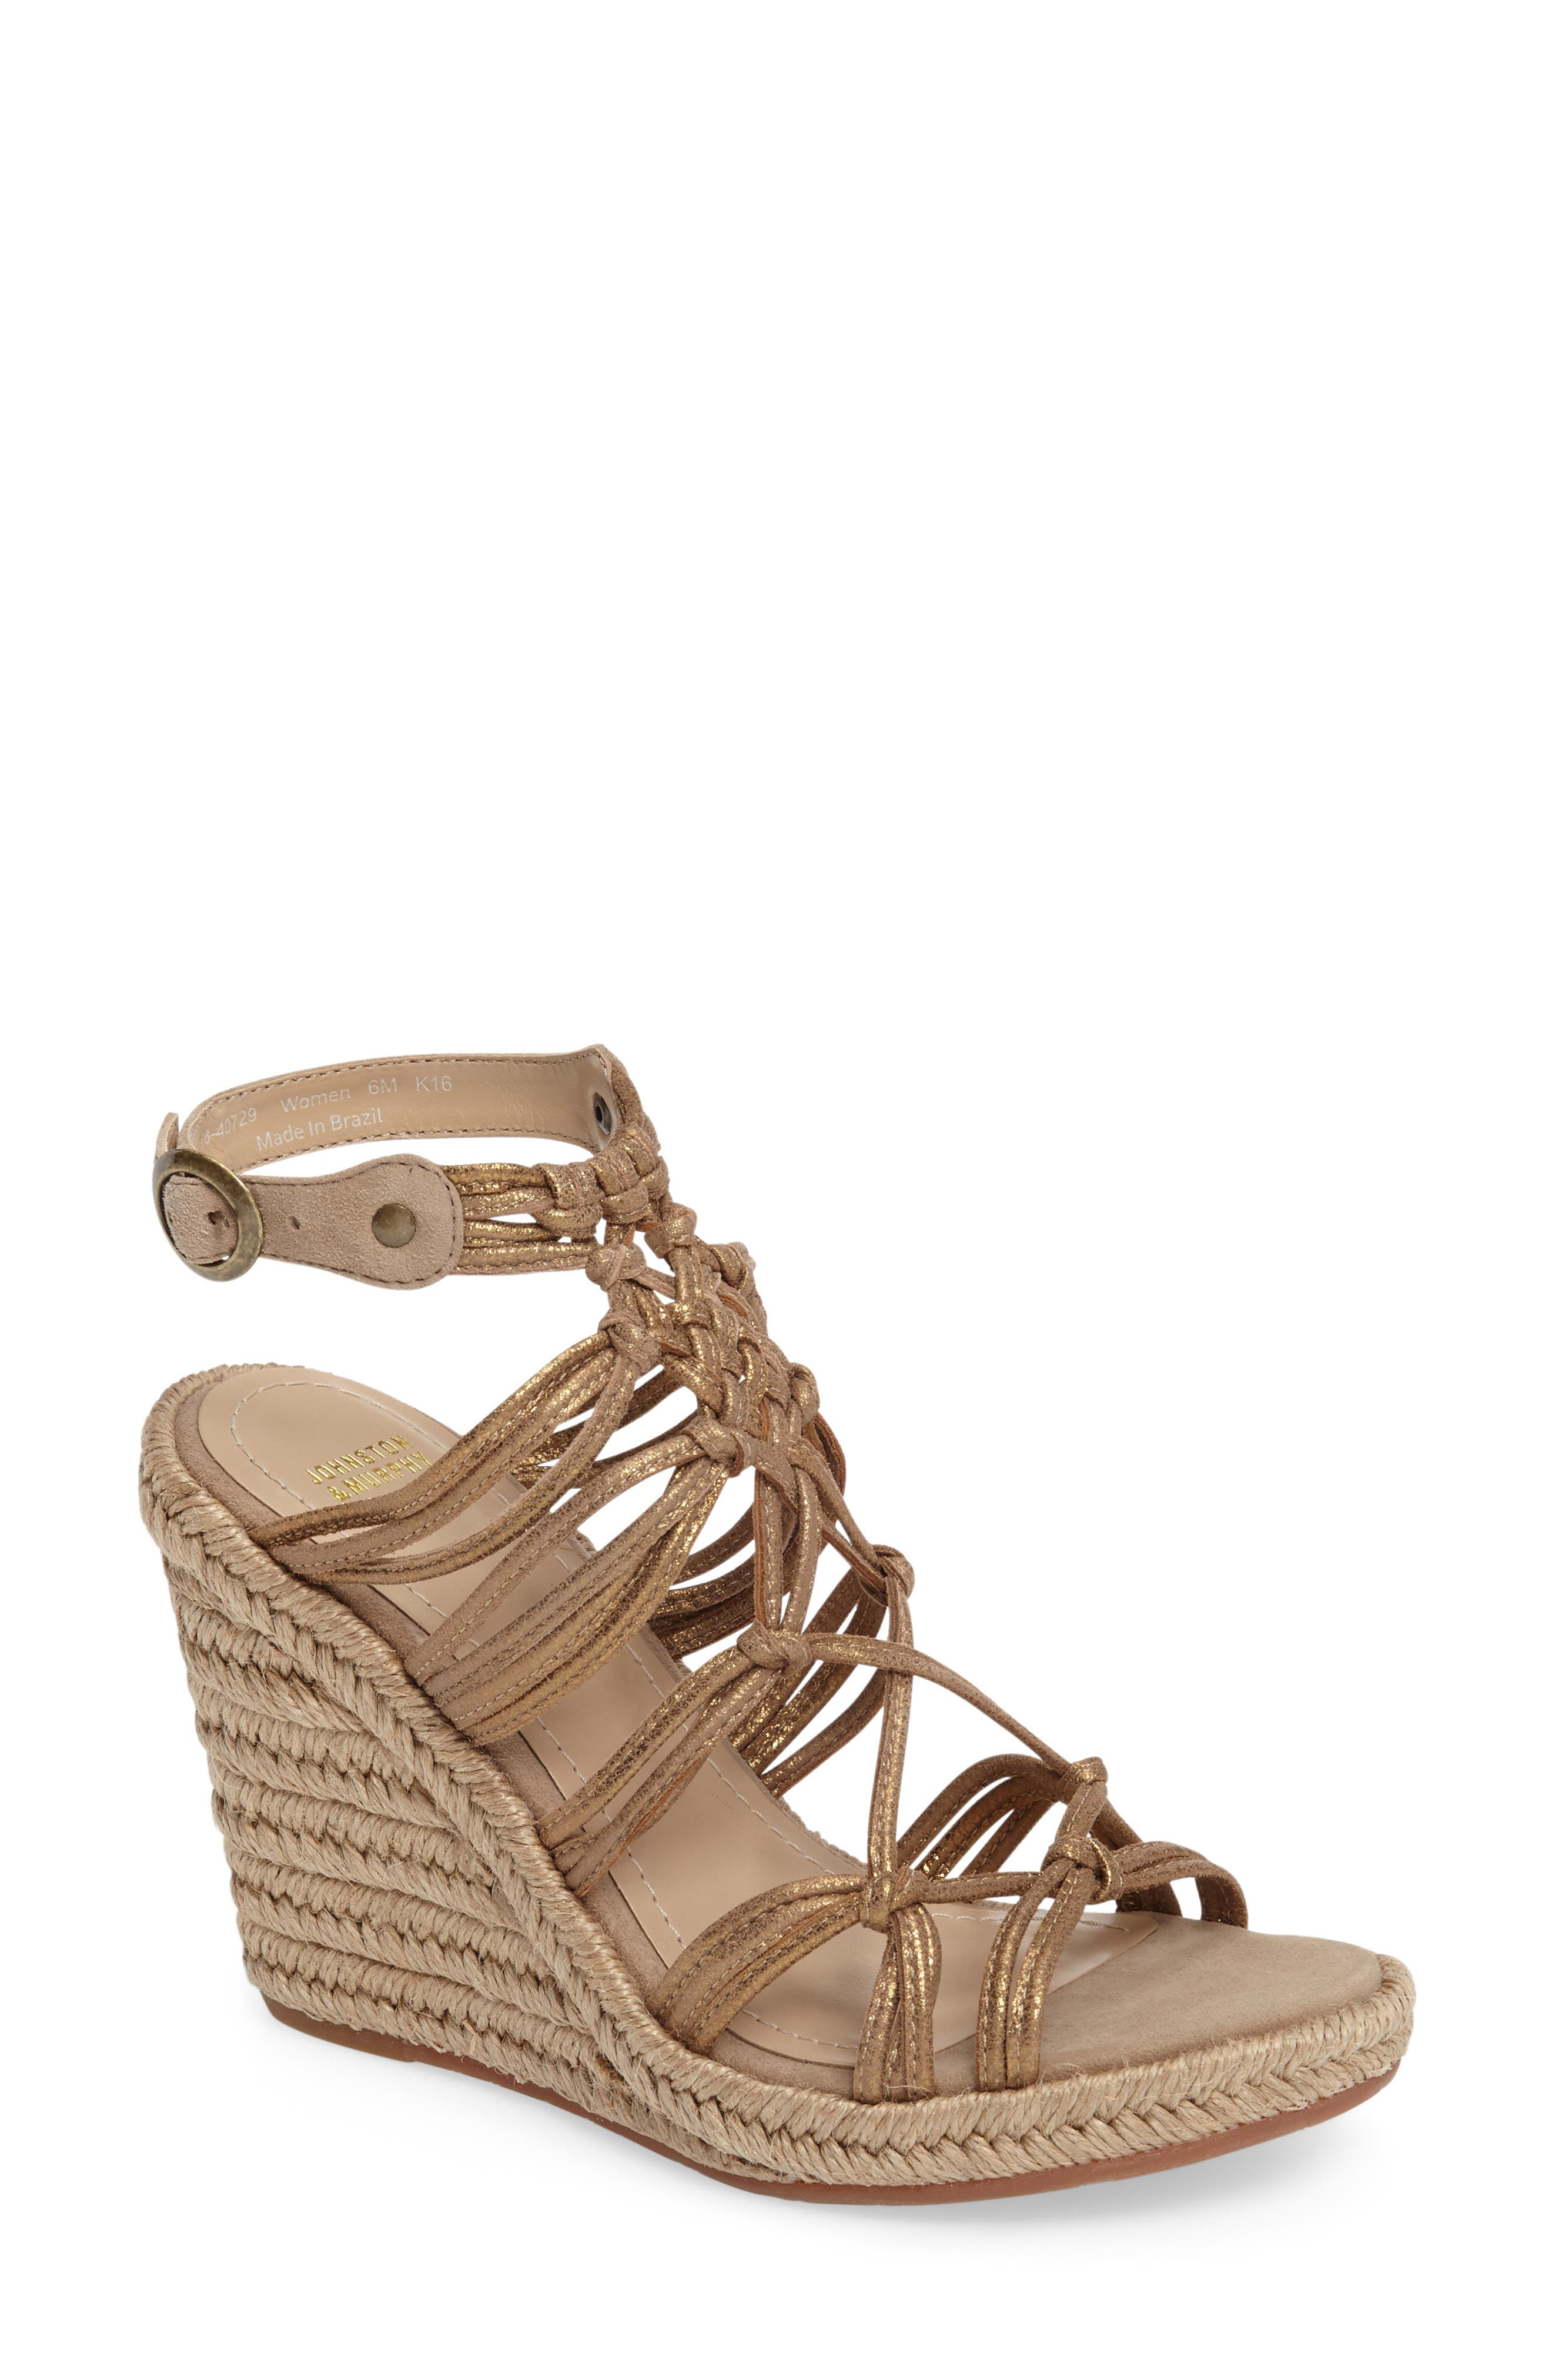 JOHNSTON & MURPHY Mindy Woven Wedge Sandal